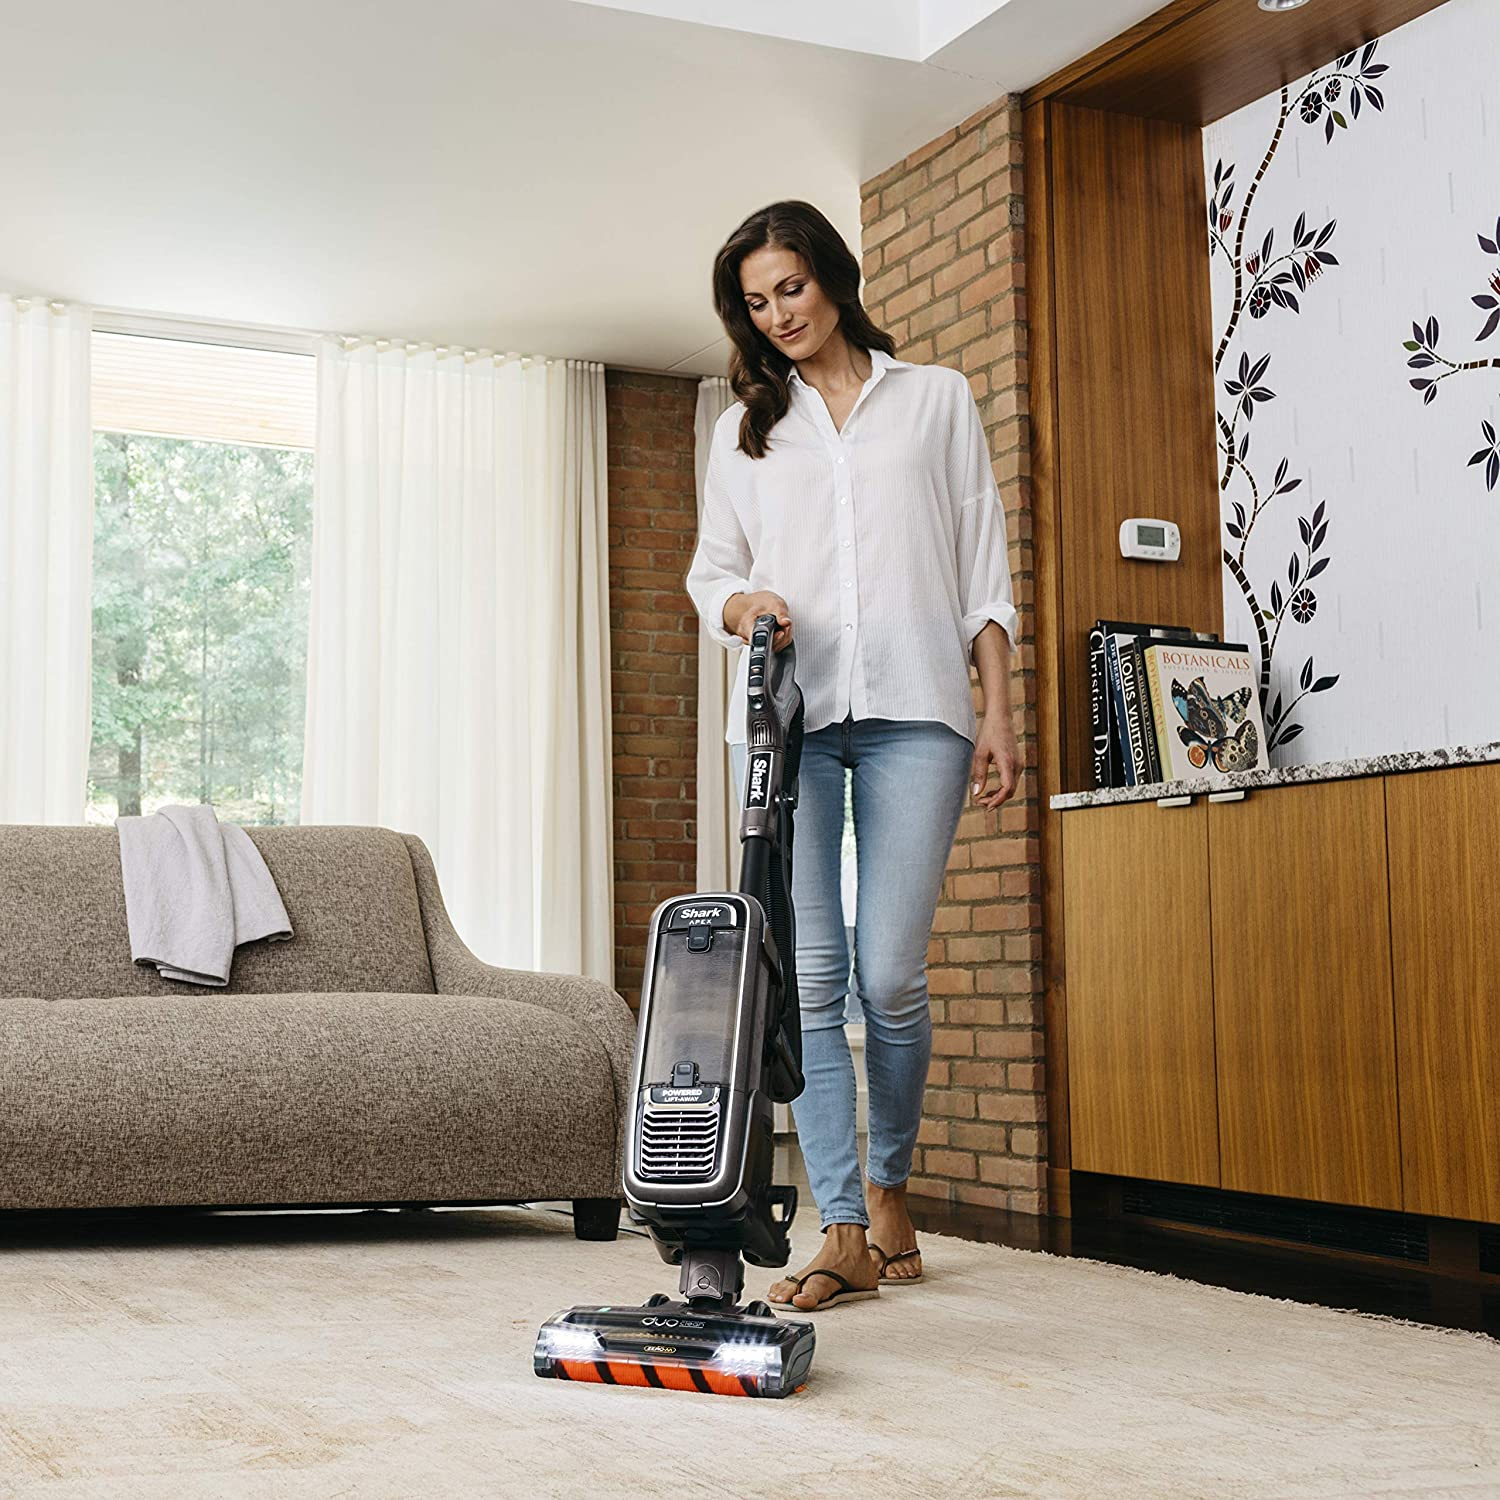 The Best 5 HEPA Vacuums For Allergies 34